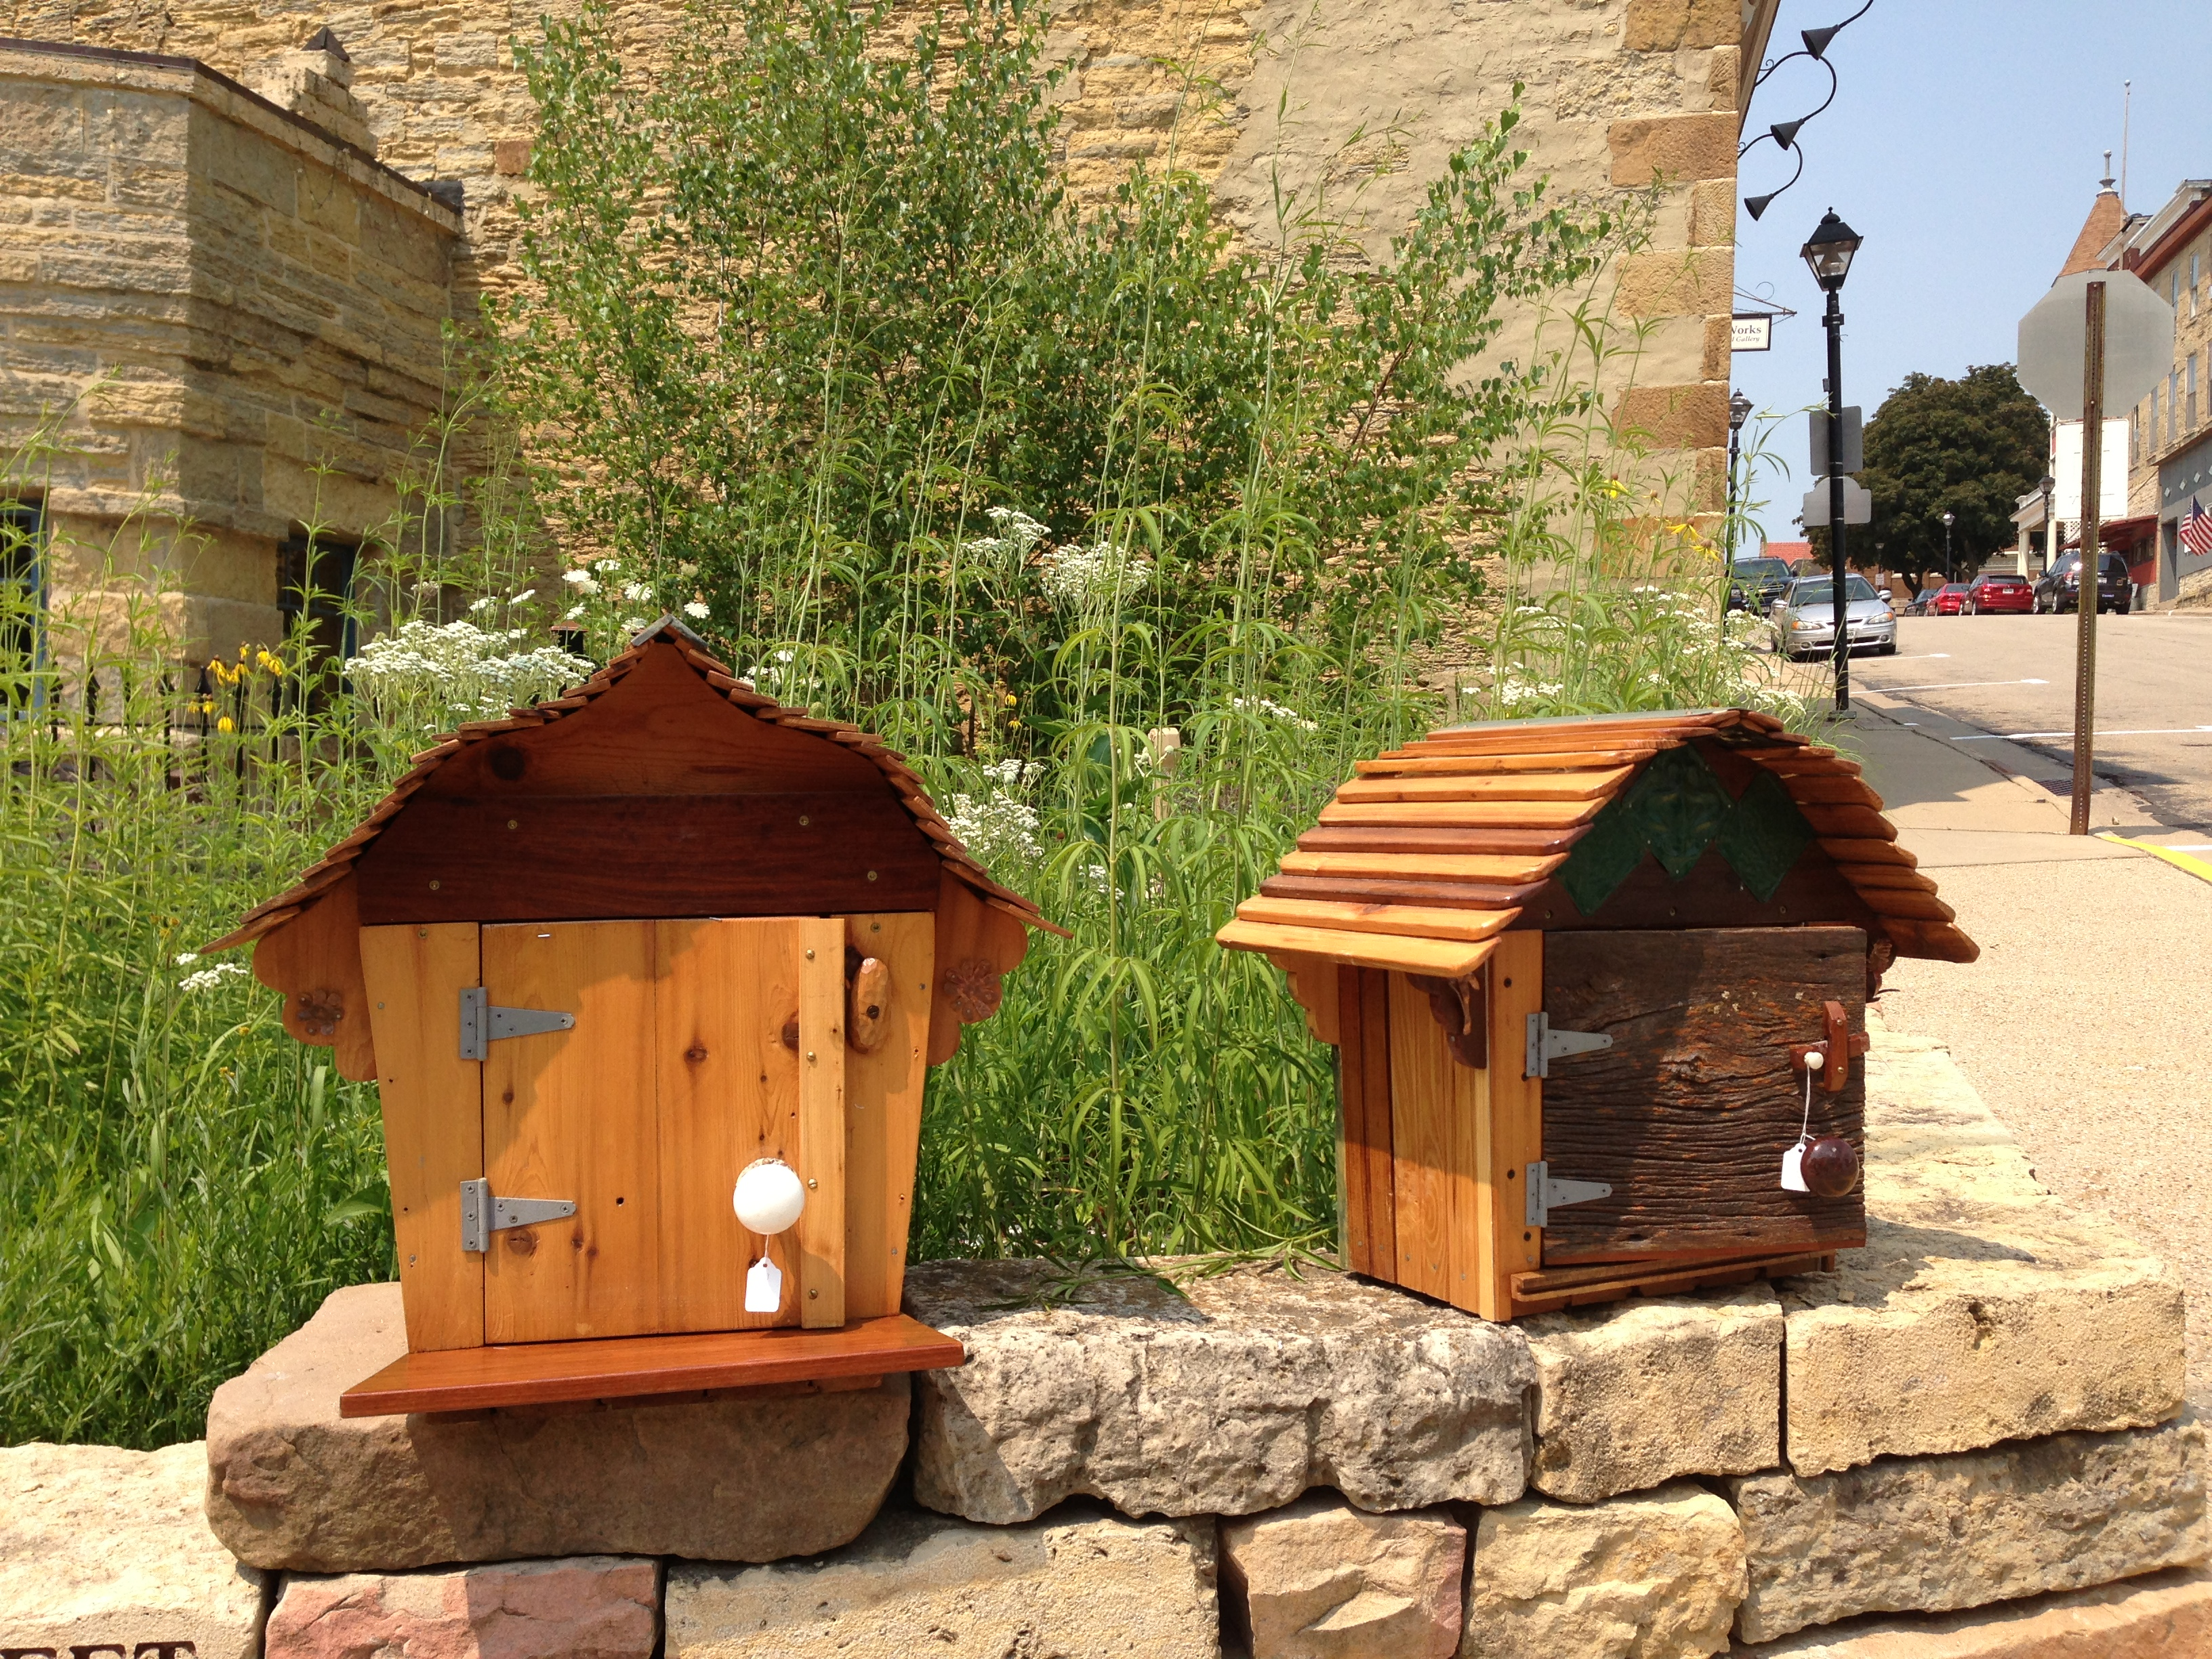 Little Free Walk of Little Free Libraries